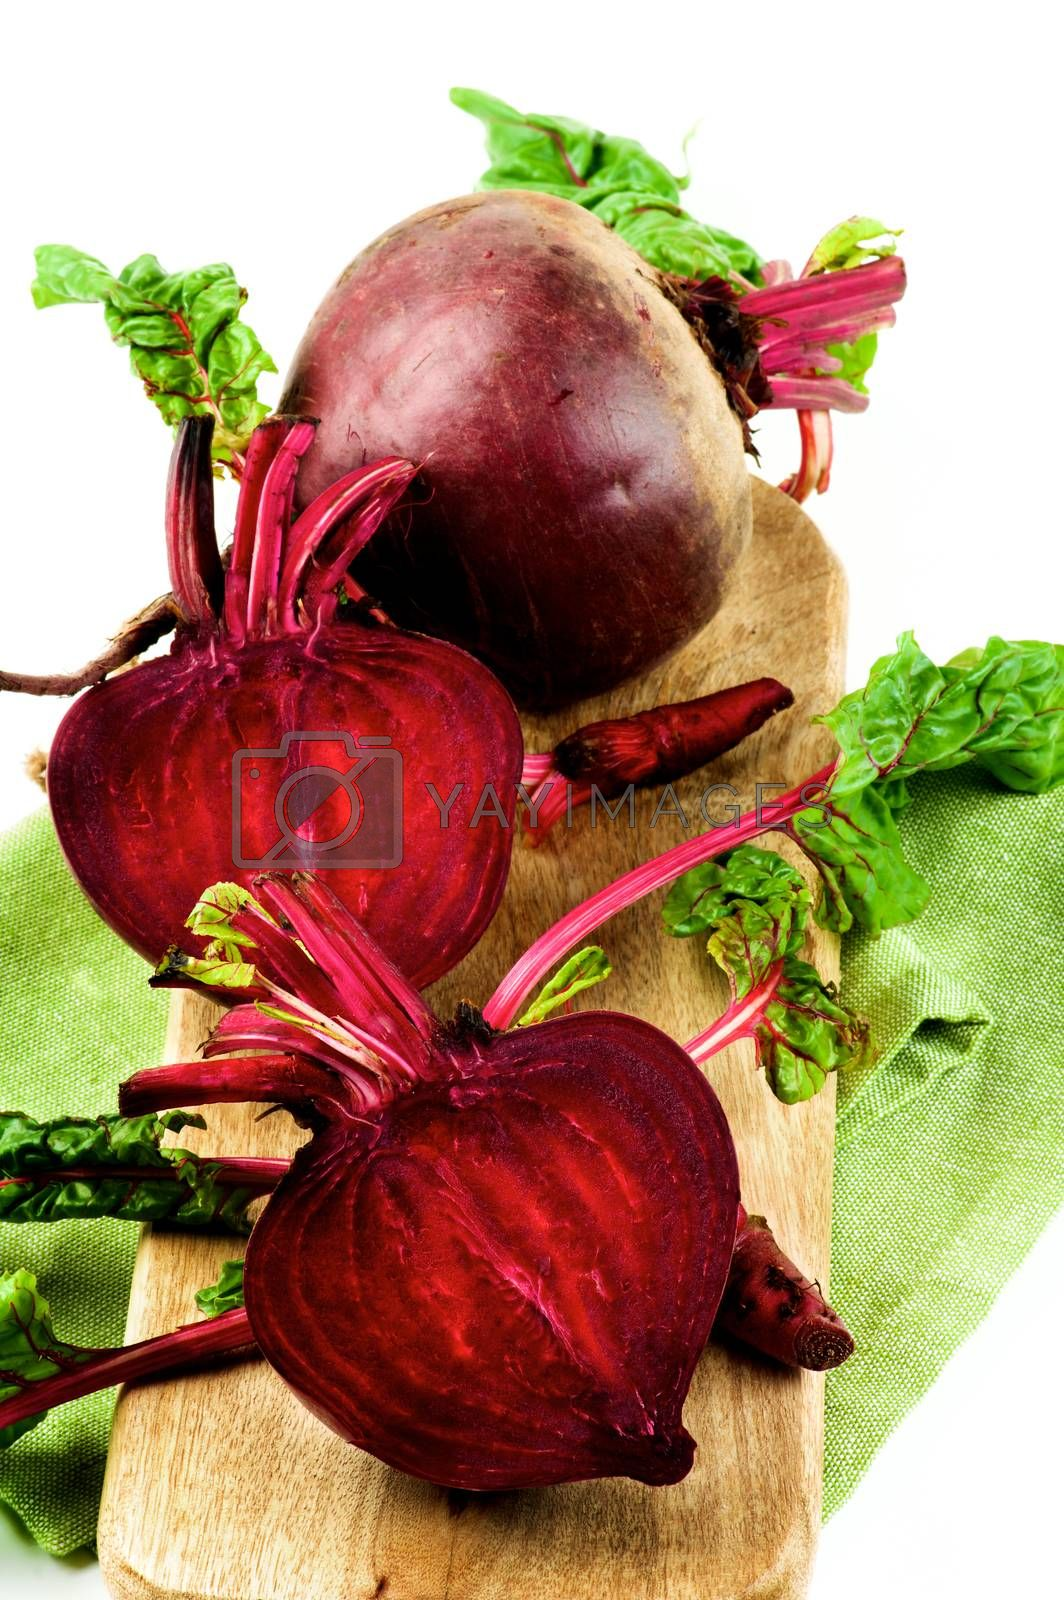 Two Halves and One Full Body Fresh Raw Organic Beet Roots with Green Beet Tops on Wooden Board and Napkin isolated on White background